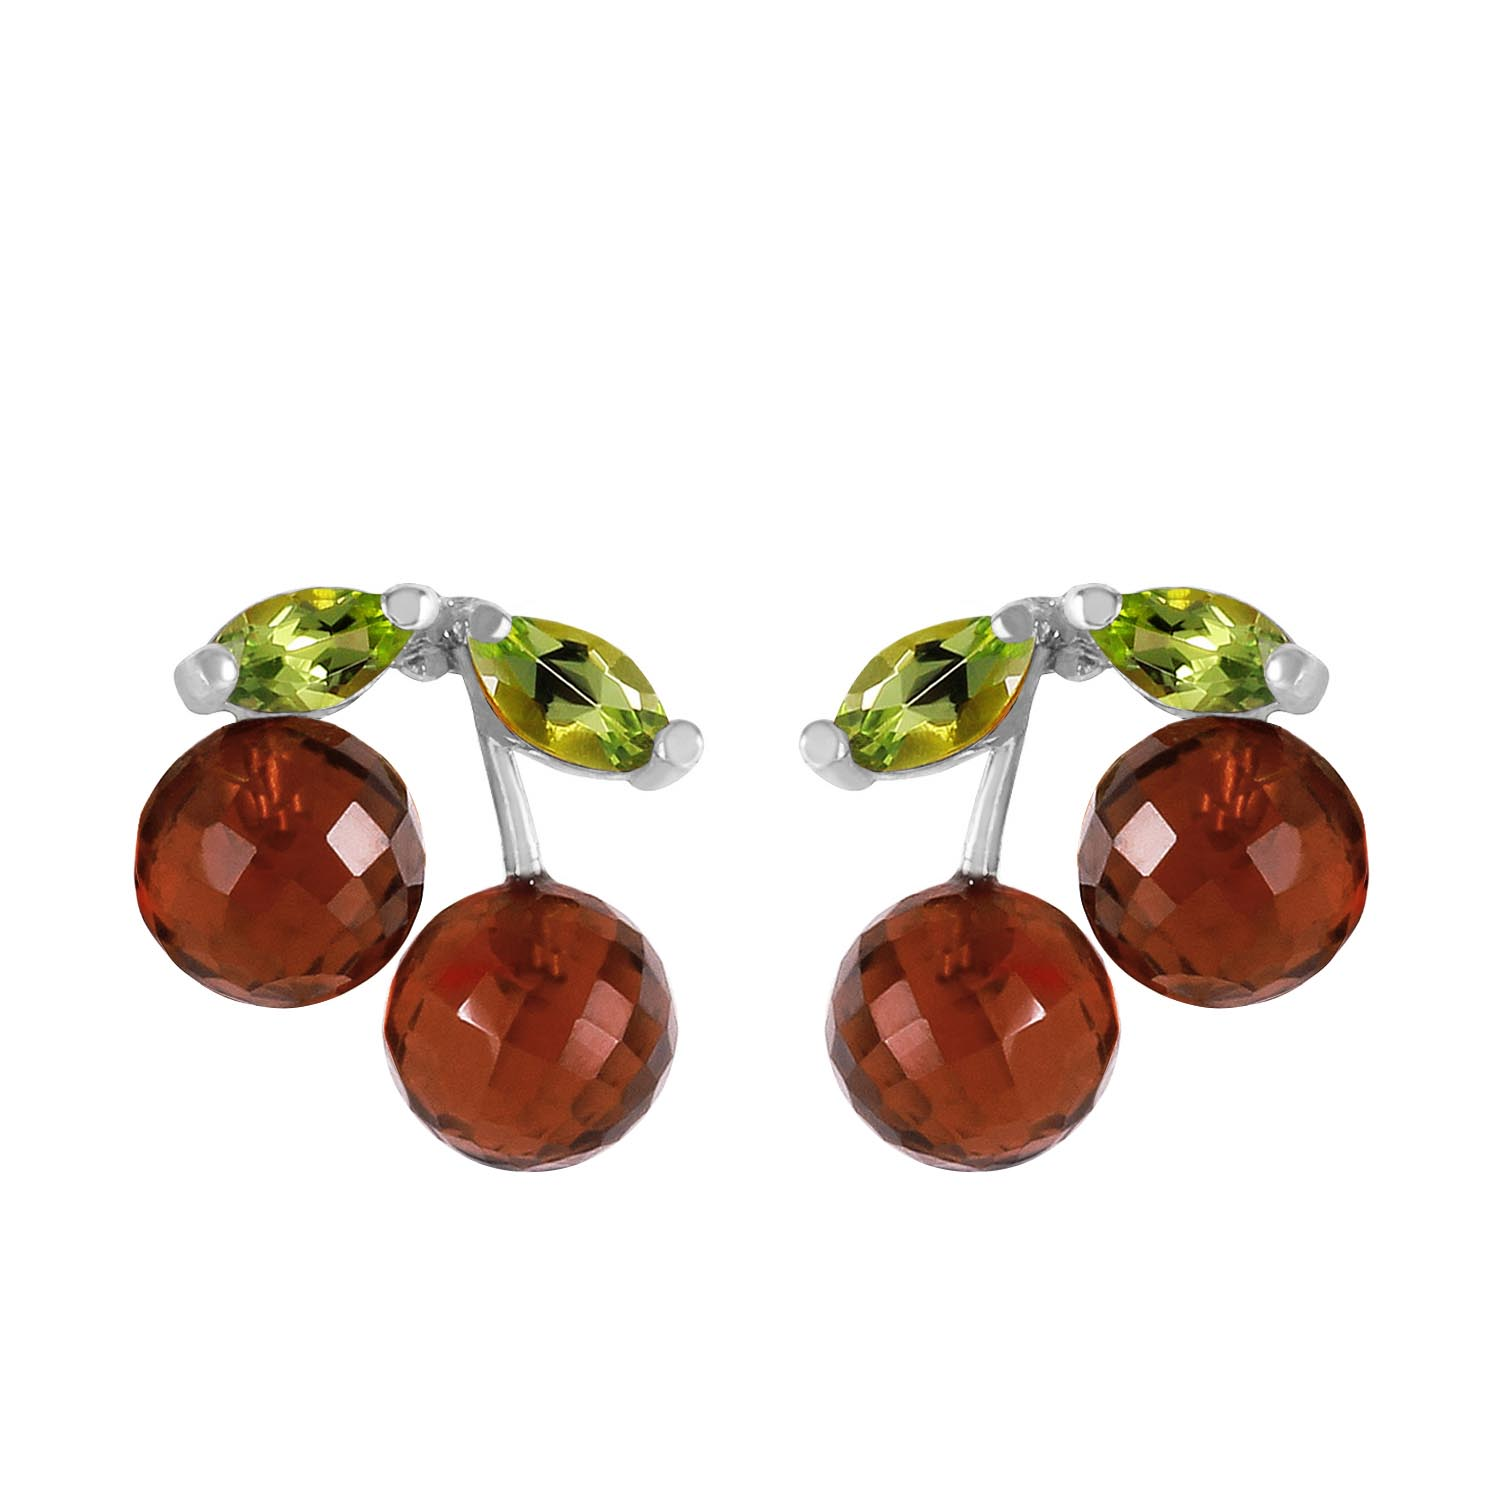 Garnet and Peridot Cherry Drop Stud Earrings 2.9ctw in 9ct White Gold